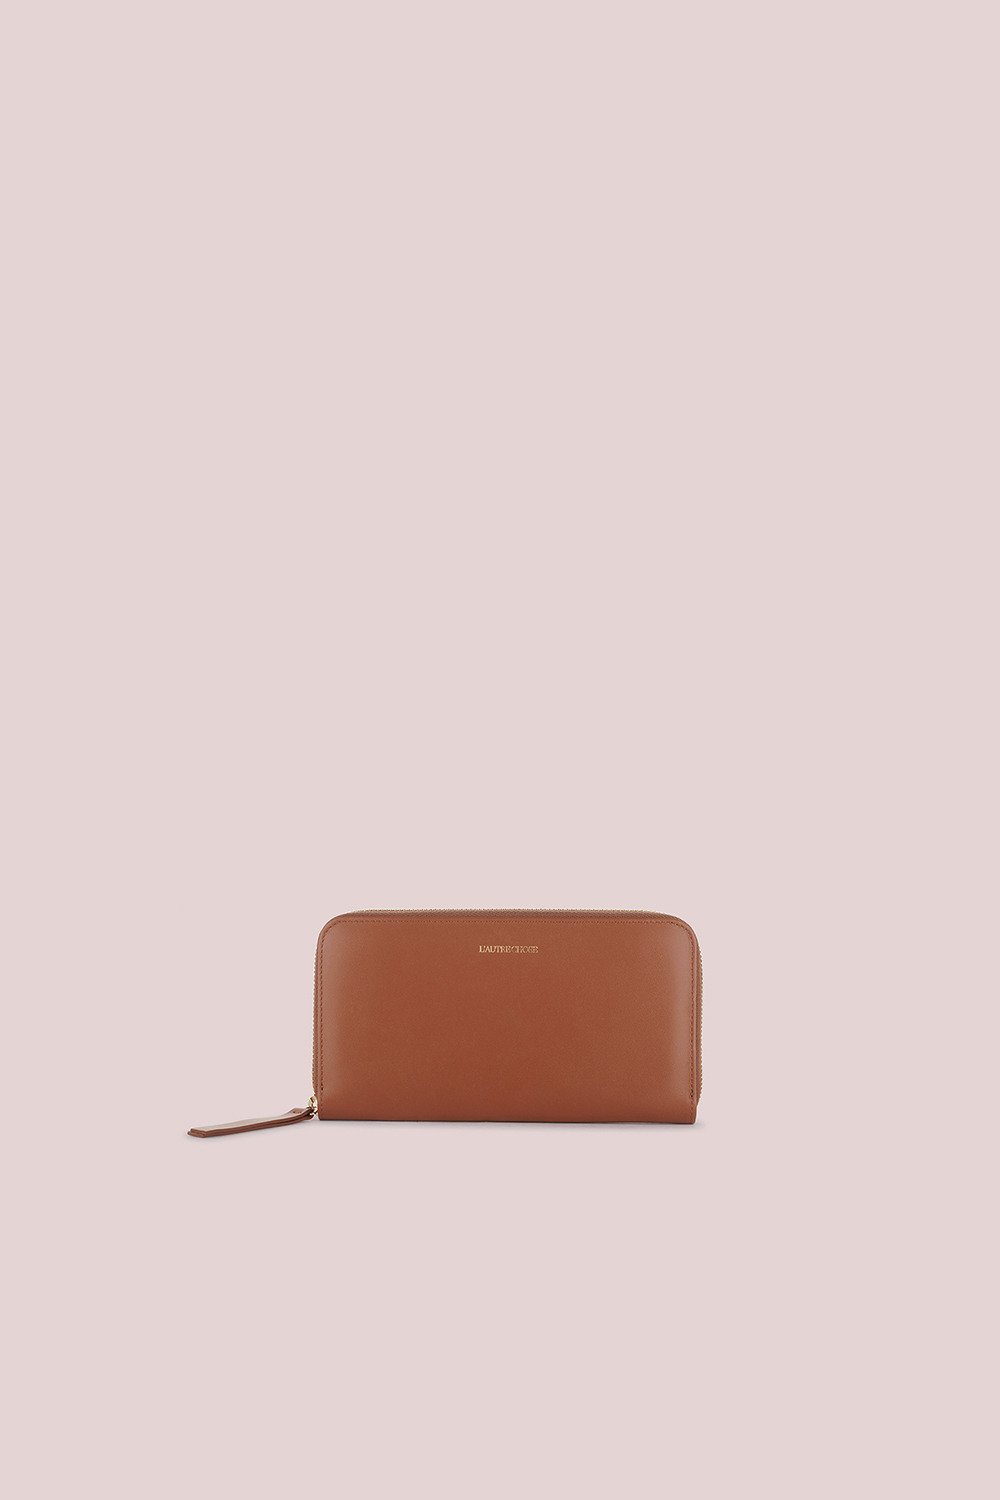 WALLET IN TAN LEATHER